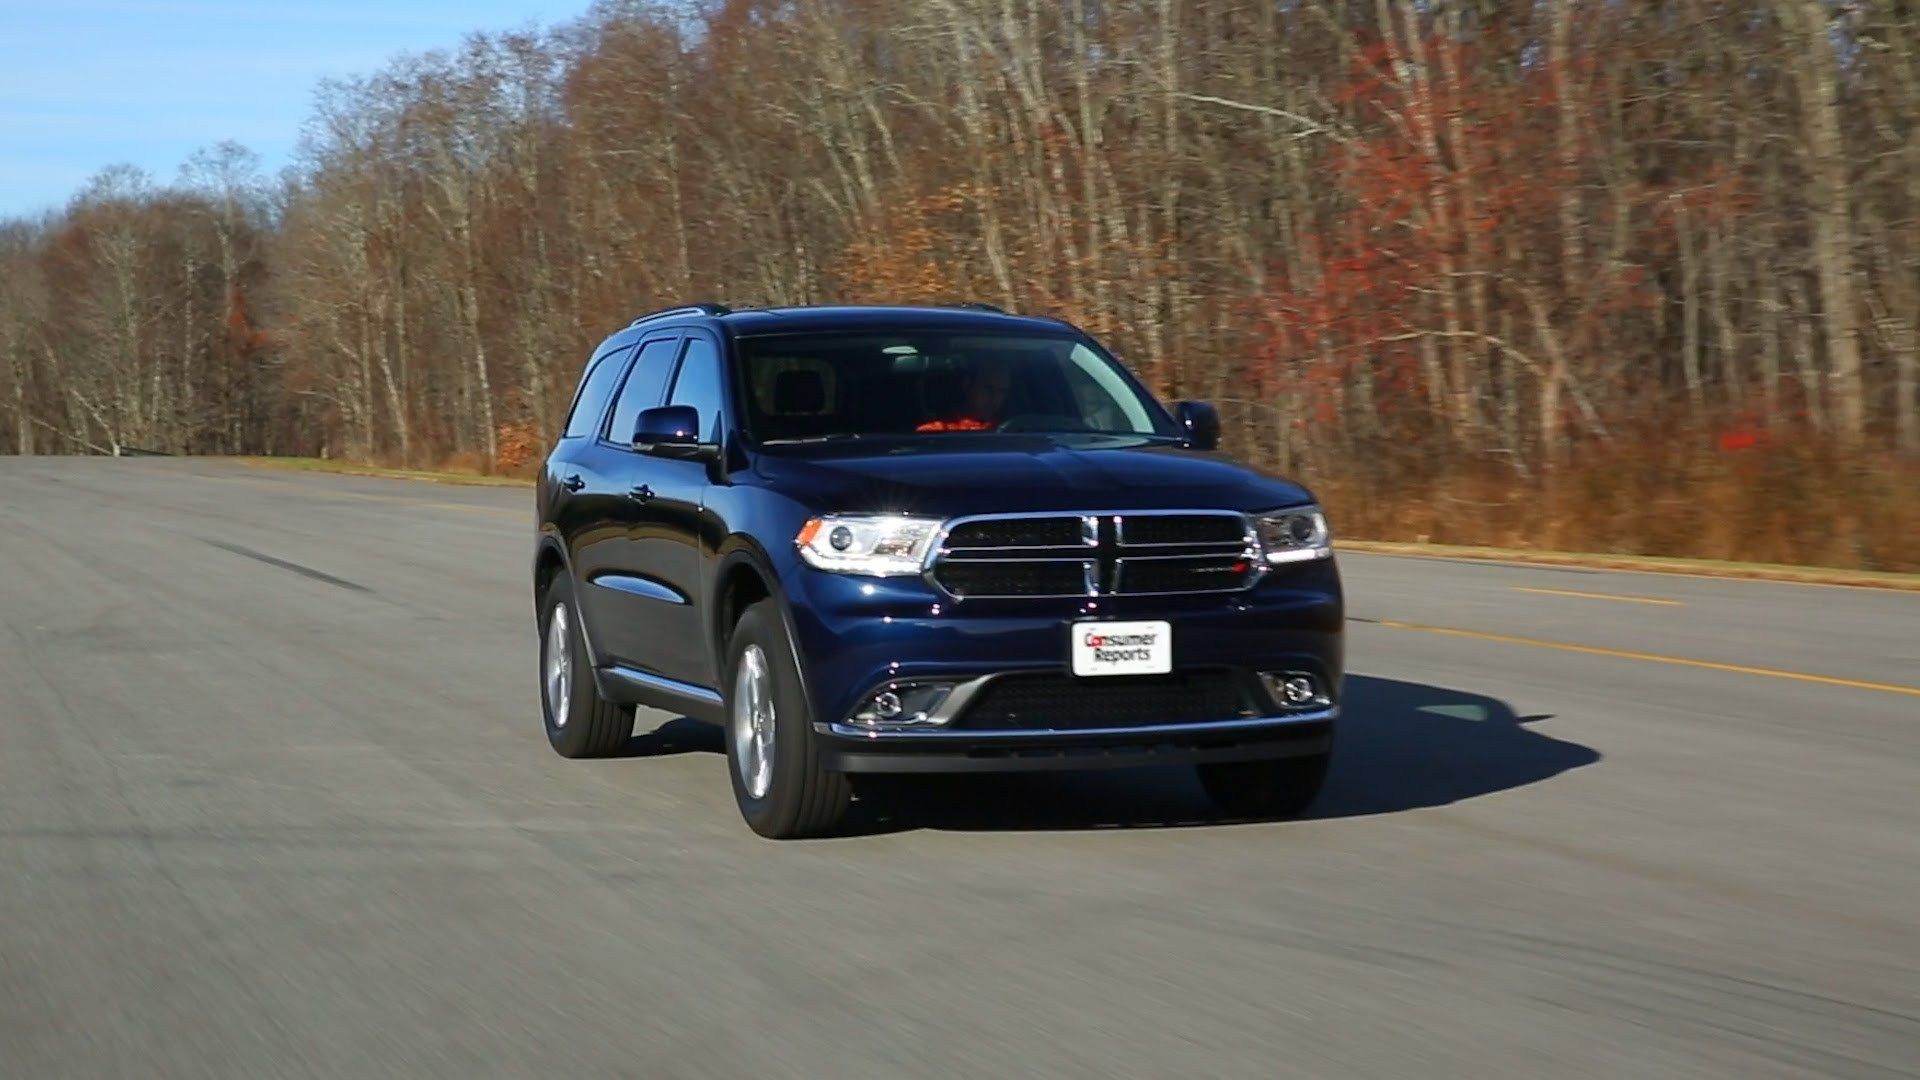 2014 Dodge Durango review Dodge durango, 2014 dodge